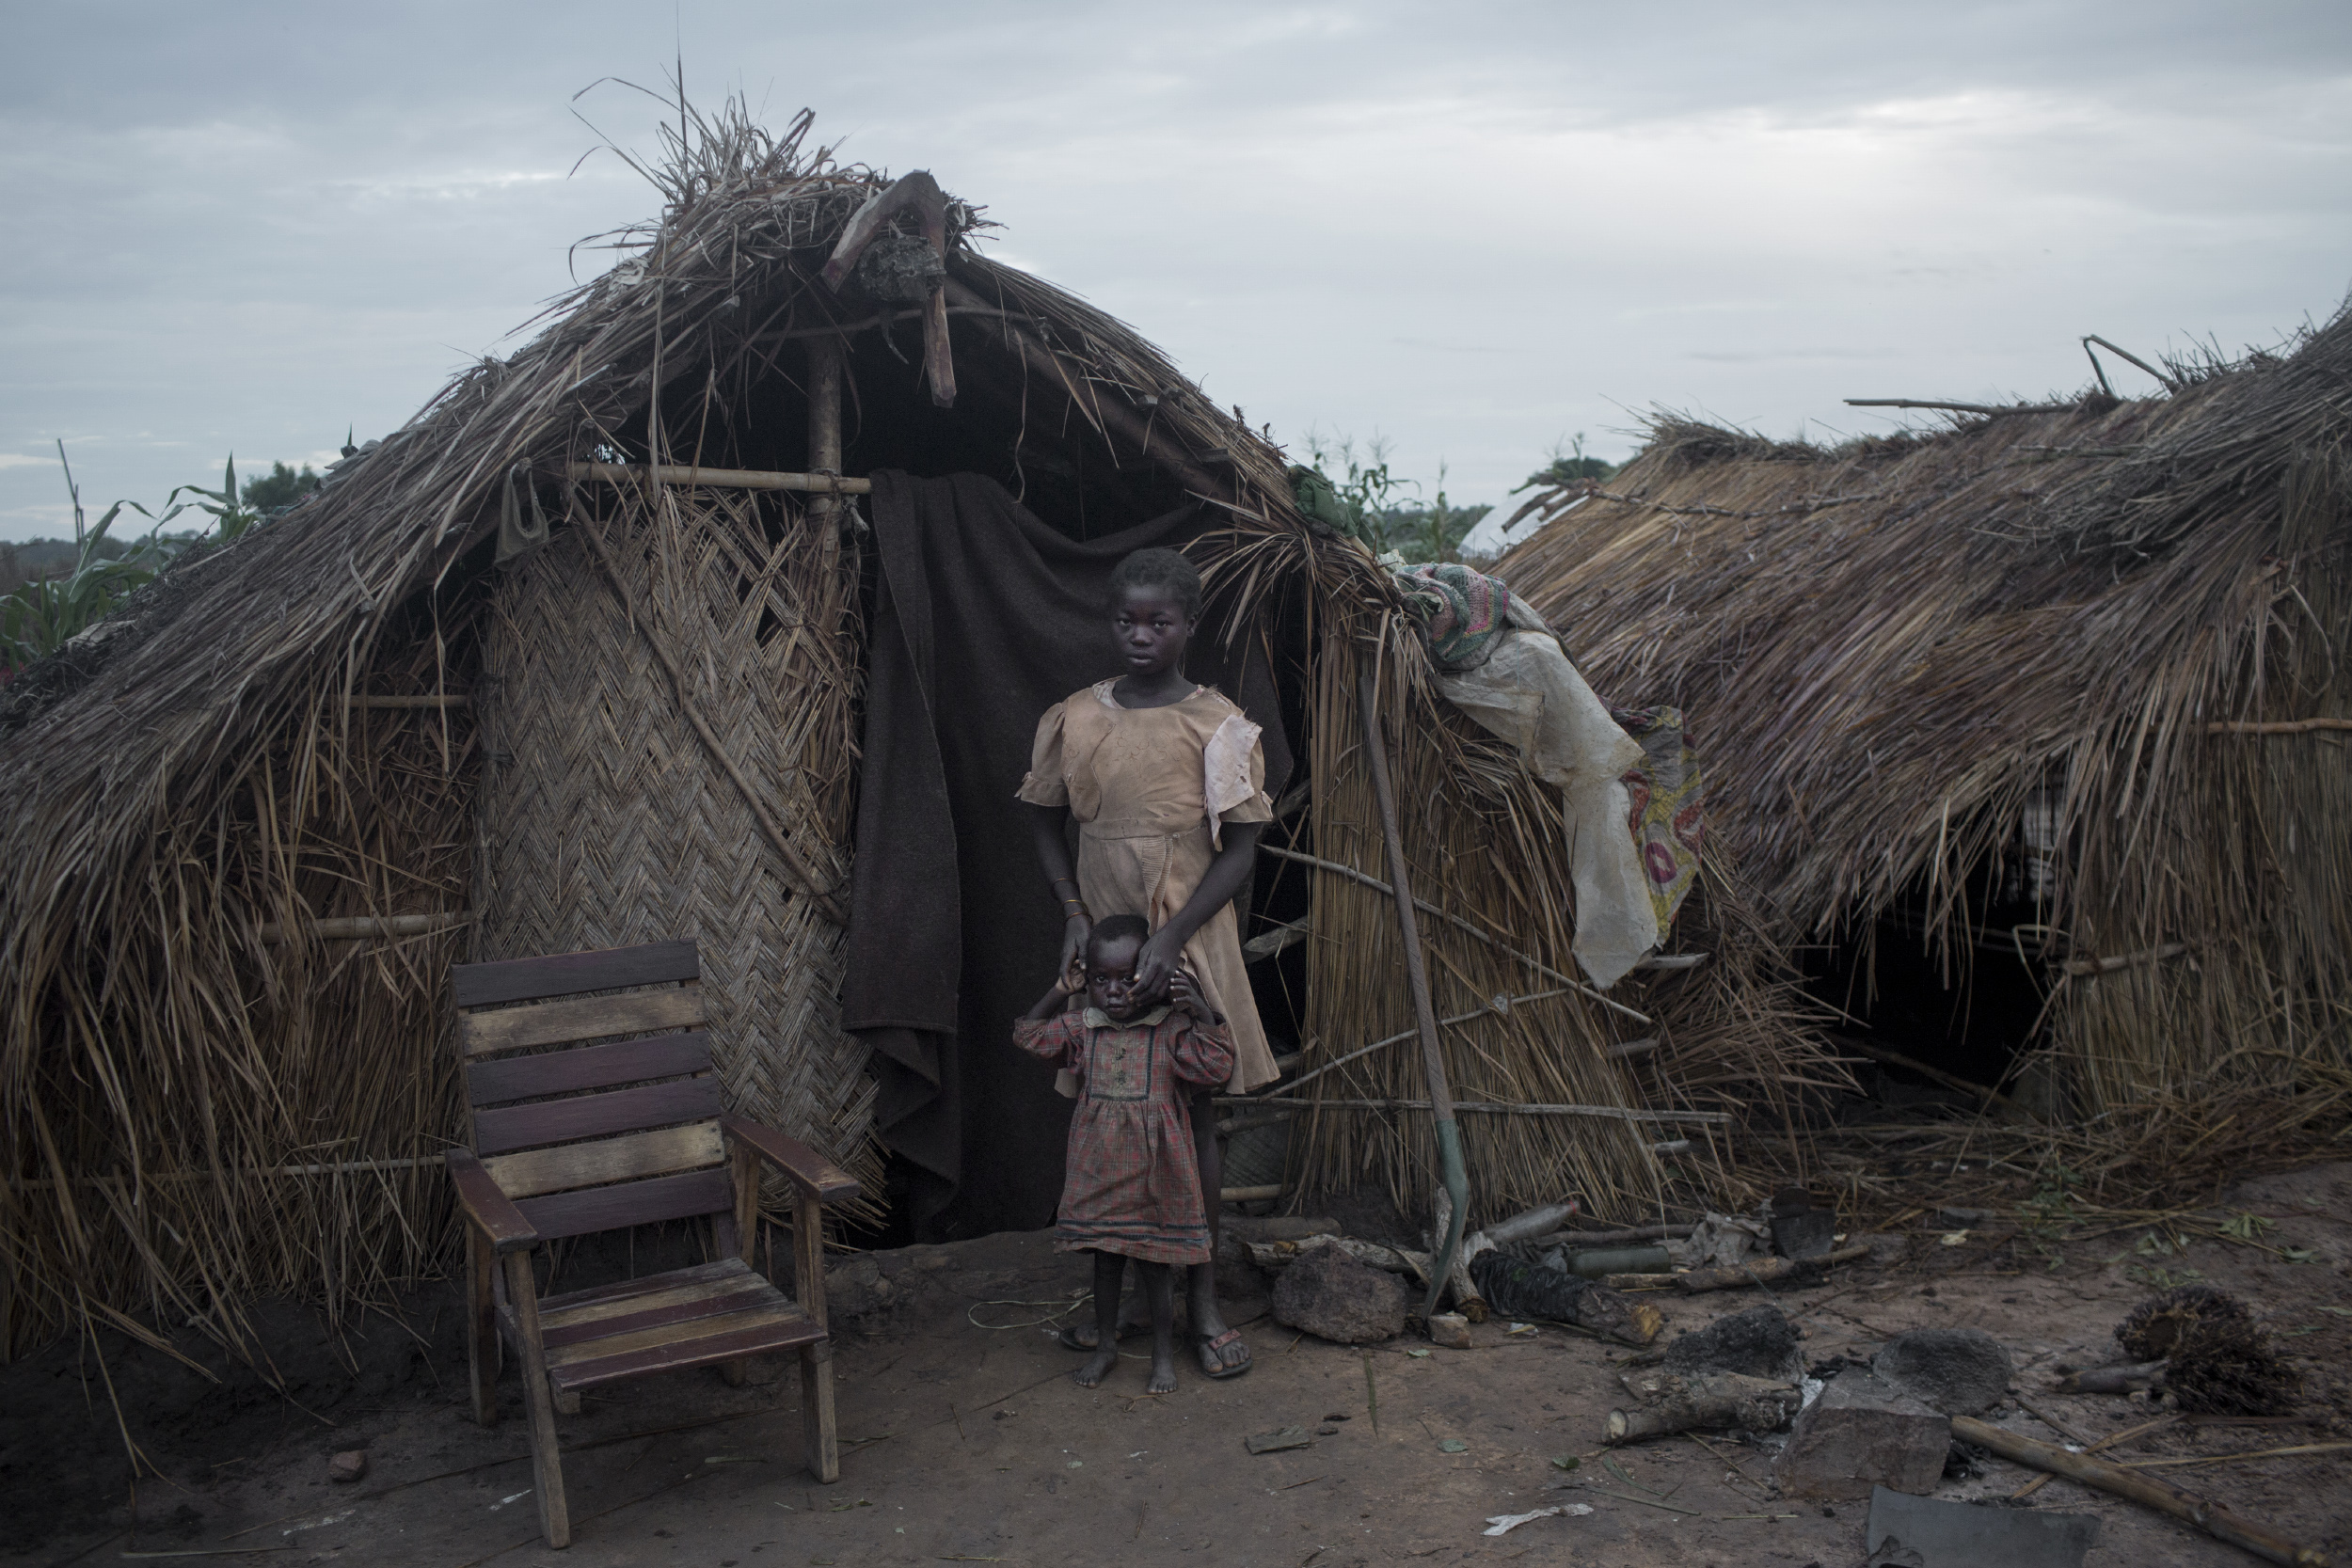 A camp for internally displaced people in Kaga Bandoro, Central African Republic, July 30, 2015.